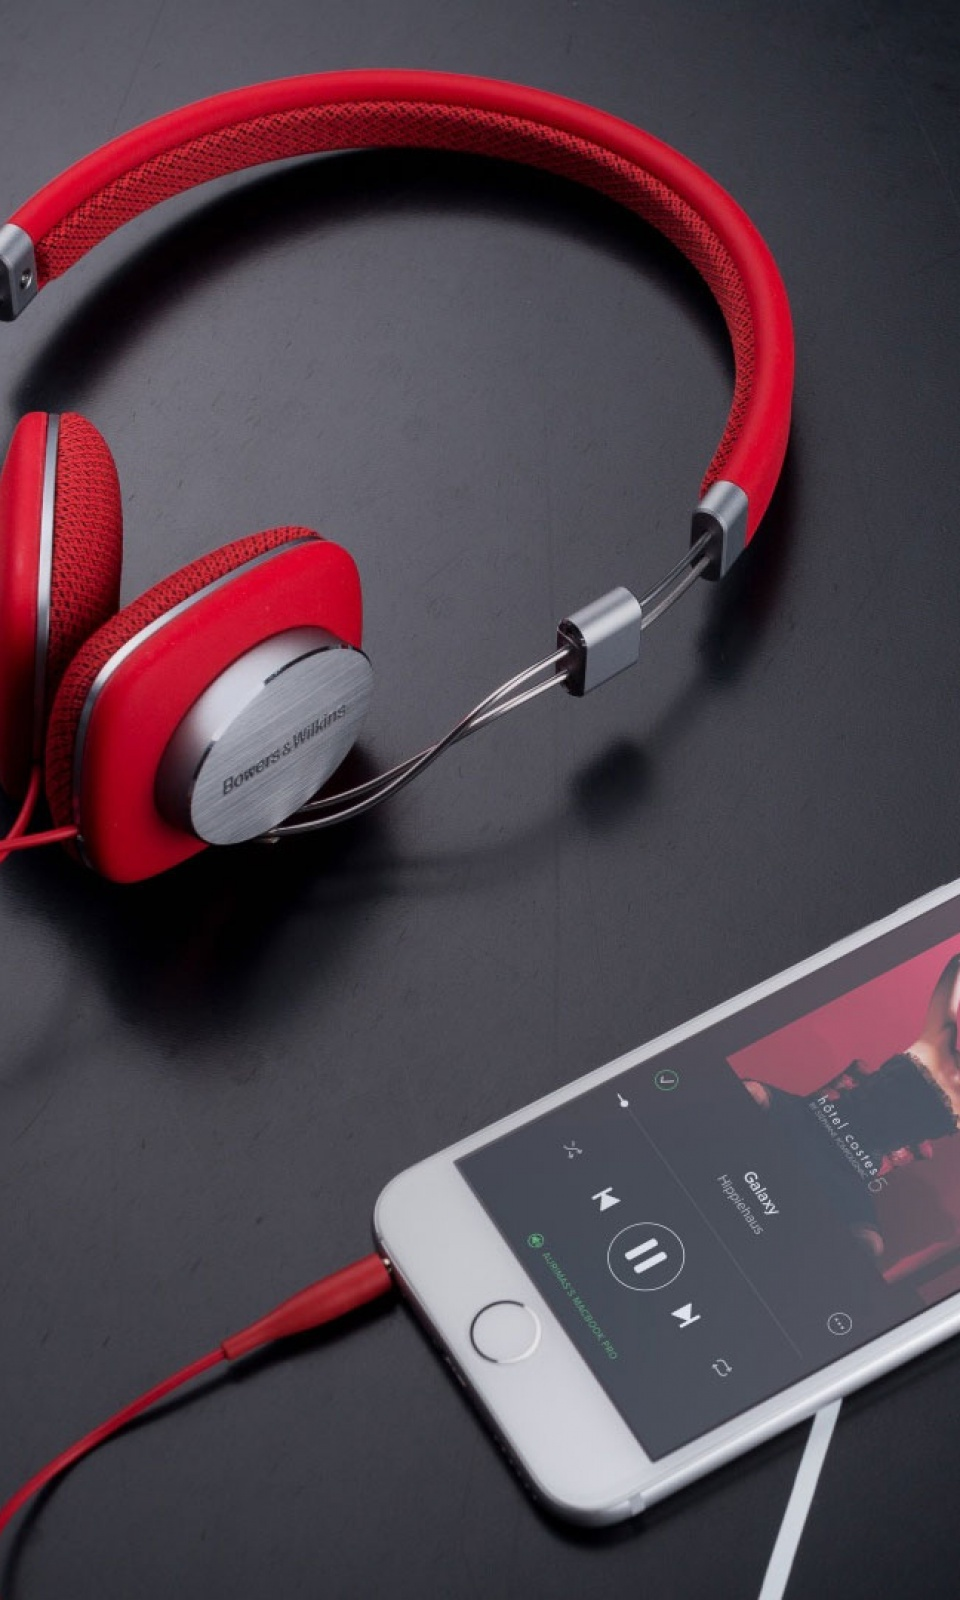 Popular Wallpaper Music Smartphone - 960-Red-Bowers-and-Wilkins-P3-Headphones-l  Pic_14390.jpg